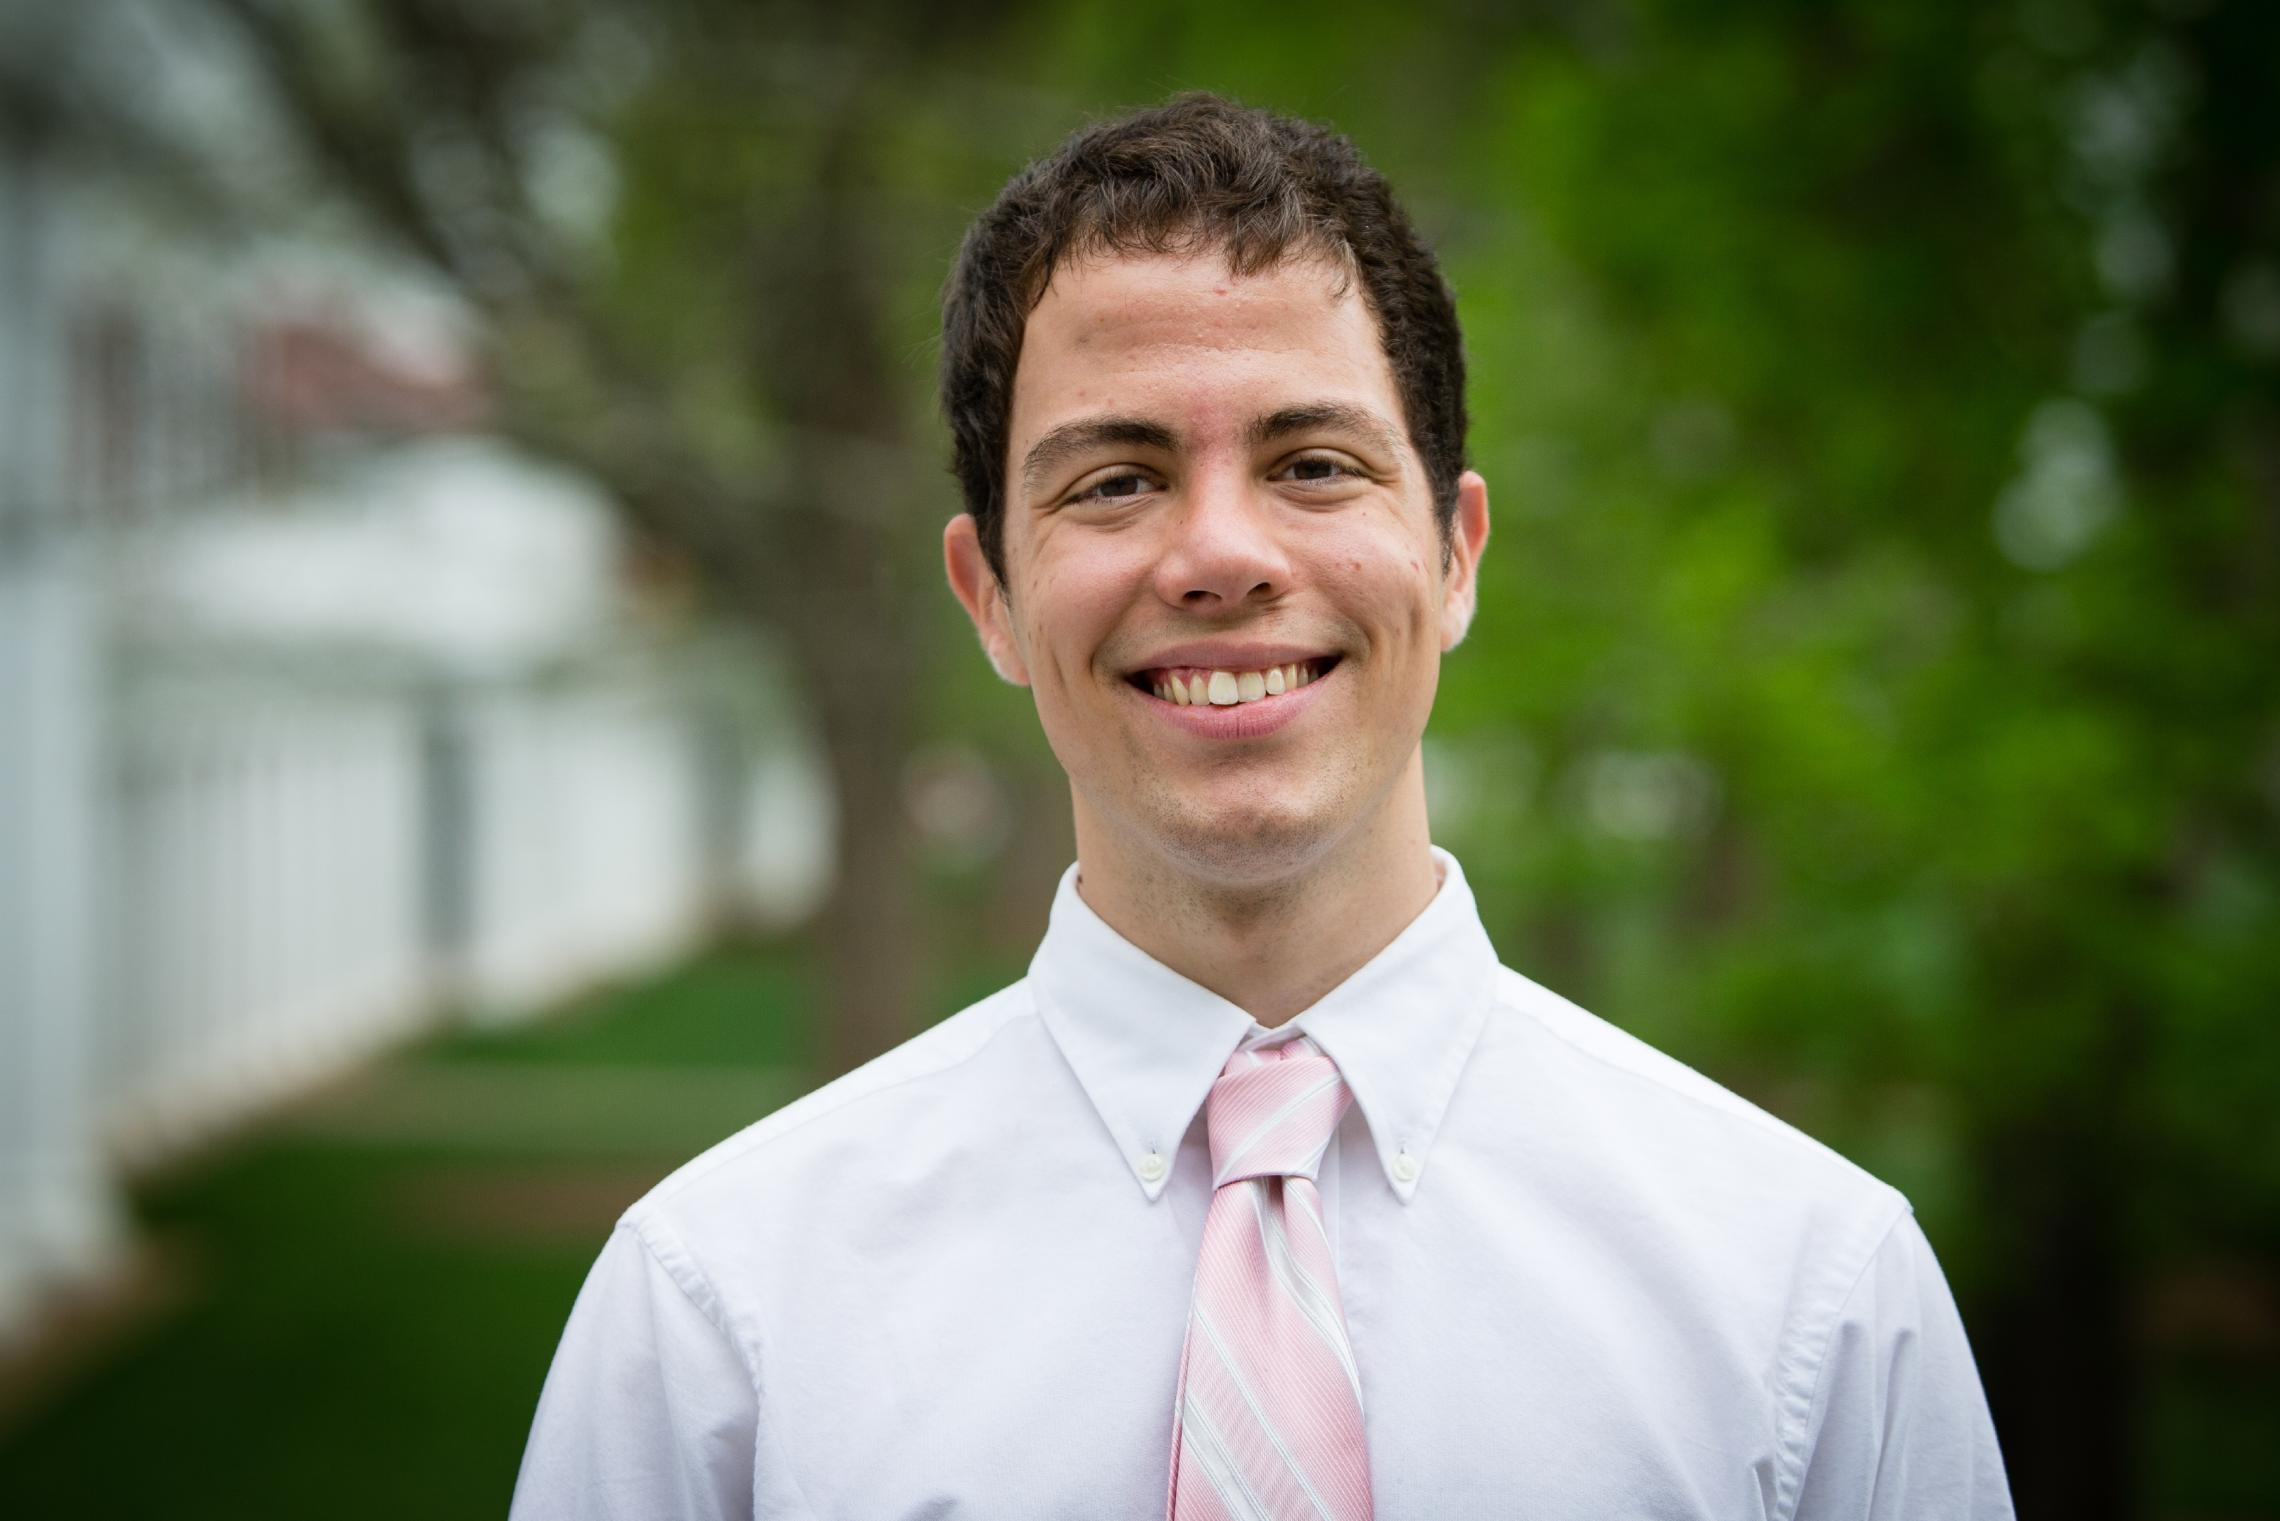 Charlie Tyson graduated from UVA in 2014 with a B.A. in political and social thought, with highest distinction, and in English. He is currently working toward his second master's degree at the University of Oxford.